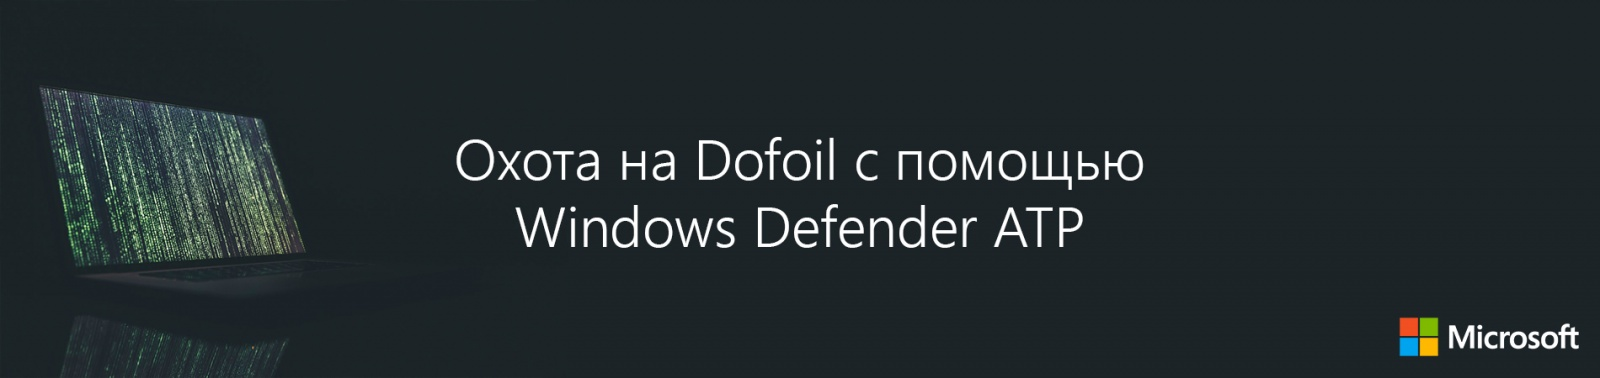 Охота на Dofoil с помощью Windows Defender ATP - 1